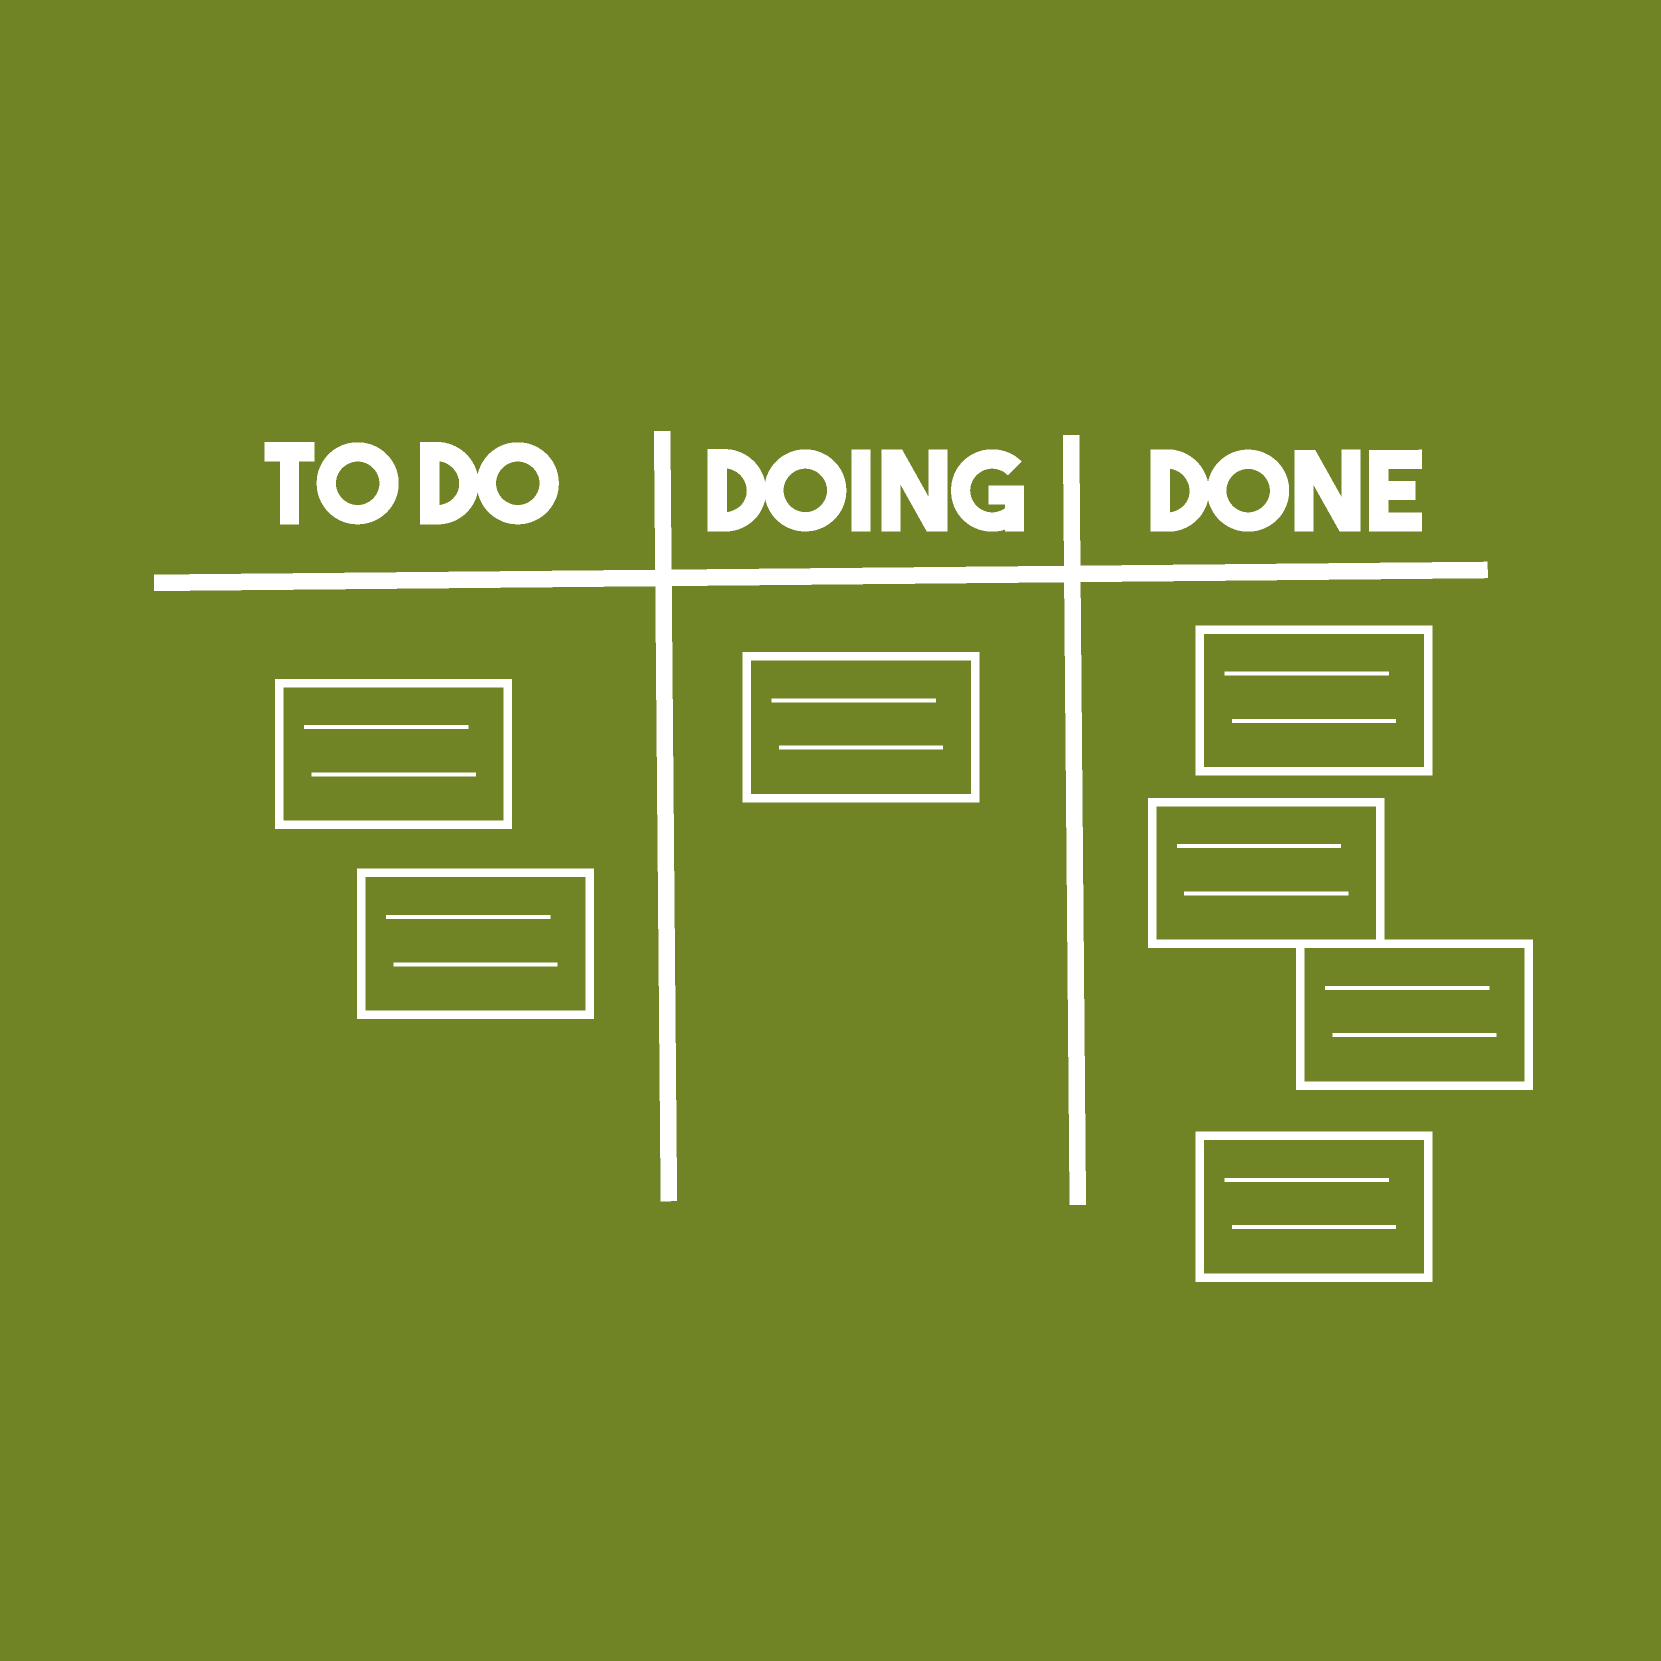 What You Can Do With Kanban